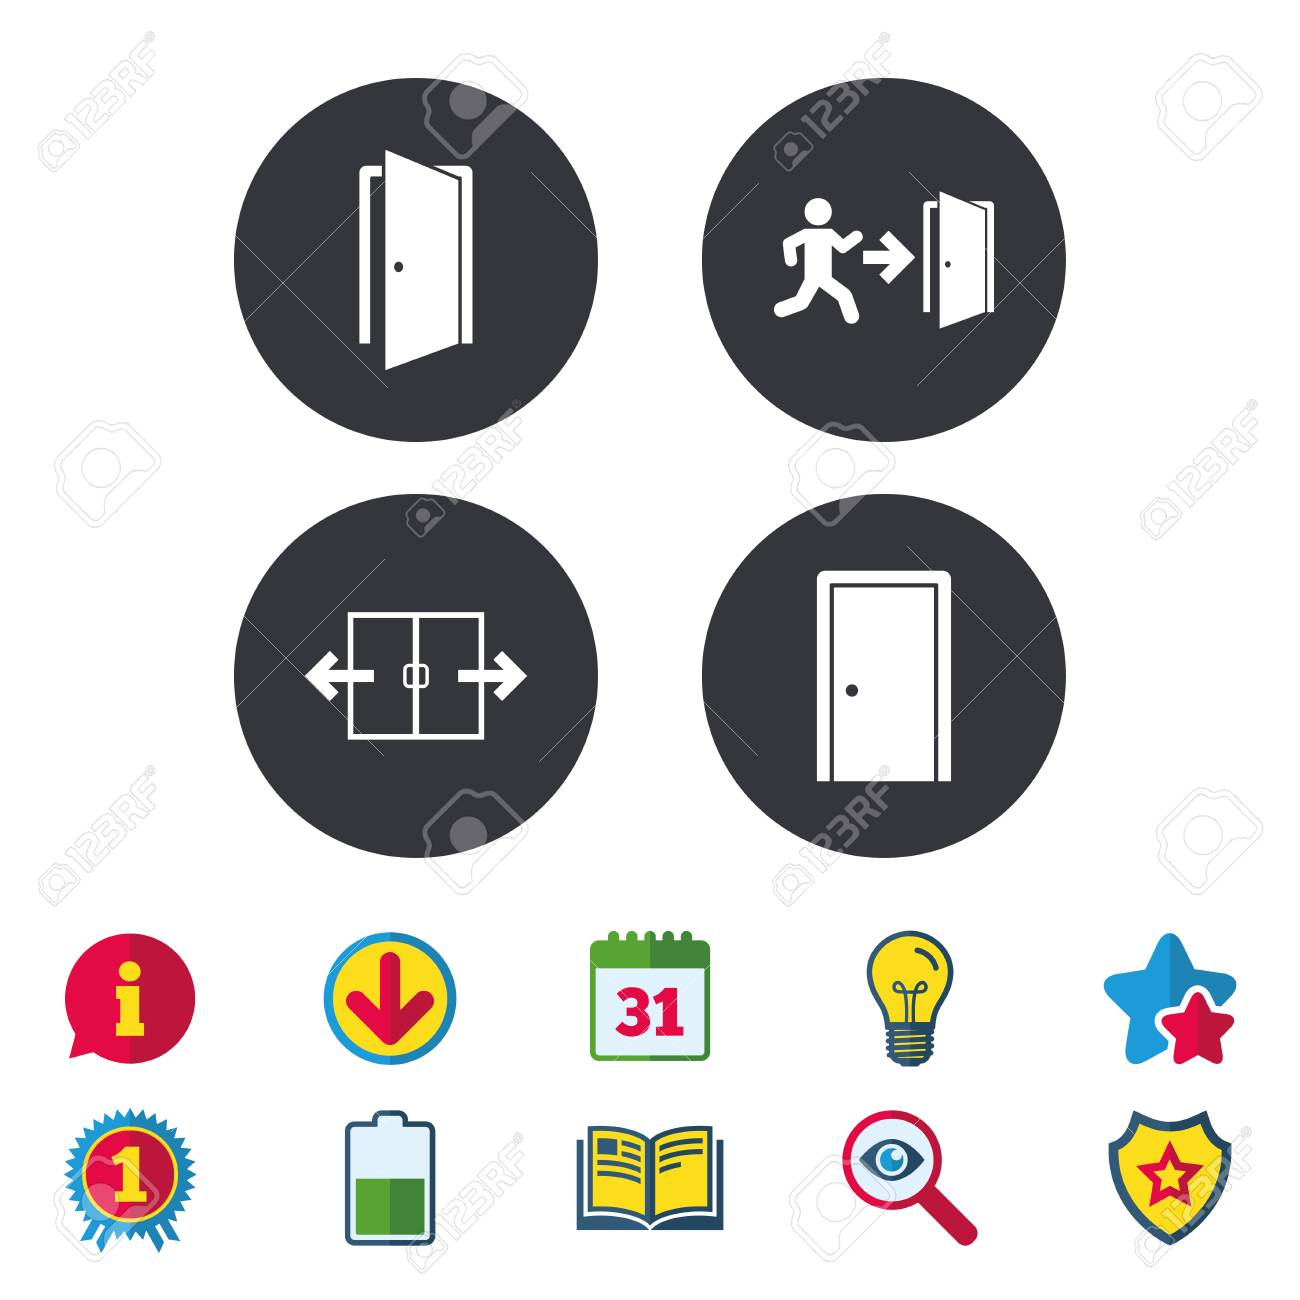 Automatic Door Icon Emergency Exit With Human Figure And Arrow